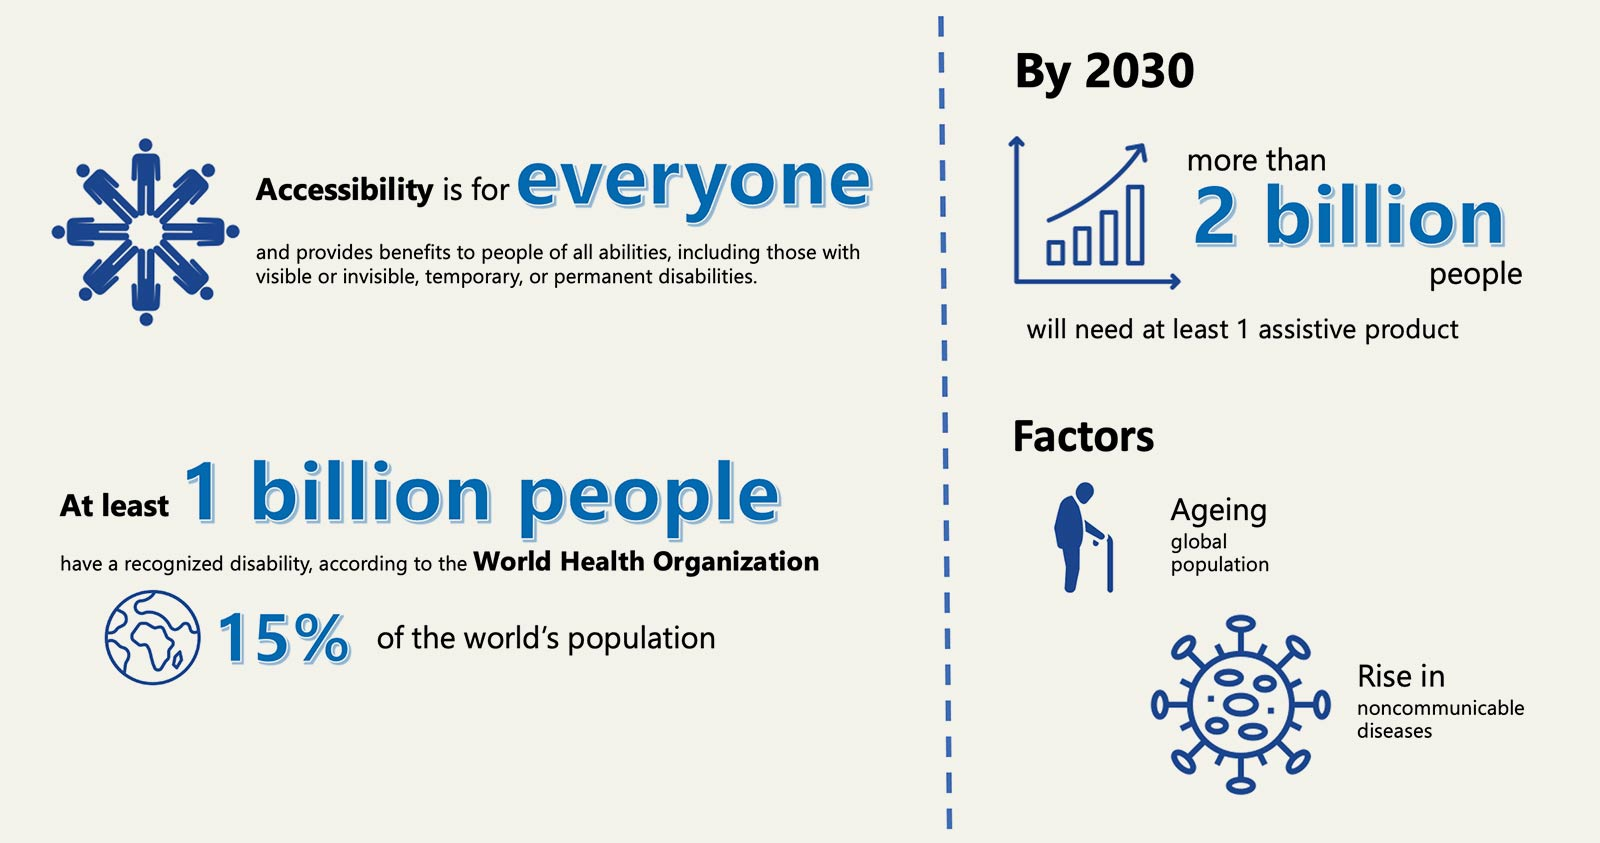 Accessibility is for everyone and provides benefits to people of all abilities, including those with visible or invisible, temporary, or permanent disabilities. At least 1 billion people have a recognized disability, according to the World Health Organization. That is 15 percent of the world's population. By 2030, more than 2 billion people will need at least 1 assistive product. Factors include an ageing global population and a rise in communicable diseases.